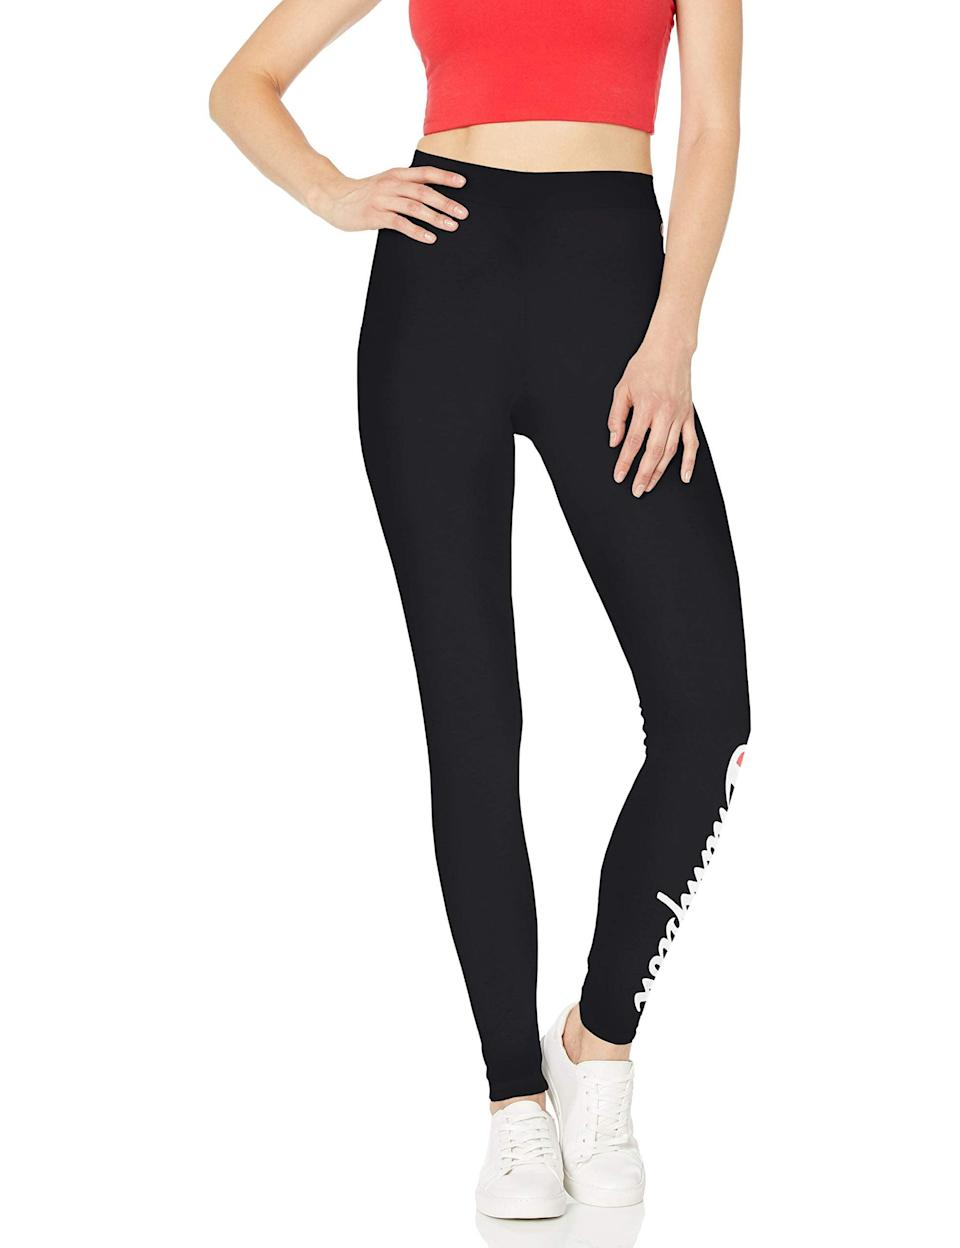 "<br><br><strong>Champion LIFE</strong> Champion Everyday Legging, $, available at <a href=""https://amzn.to/33U2cS4"" rel=""nofollow noopener"" target=""_blank"" data-ylk=""slk:Amazon"" class=""link rapid-noclick-resp"">Amazon</a>"